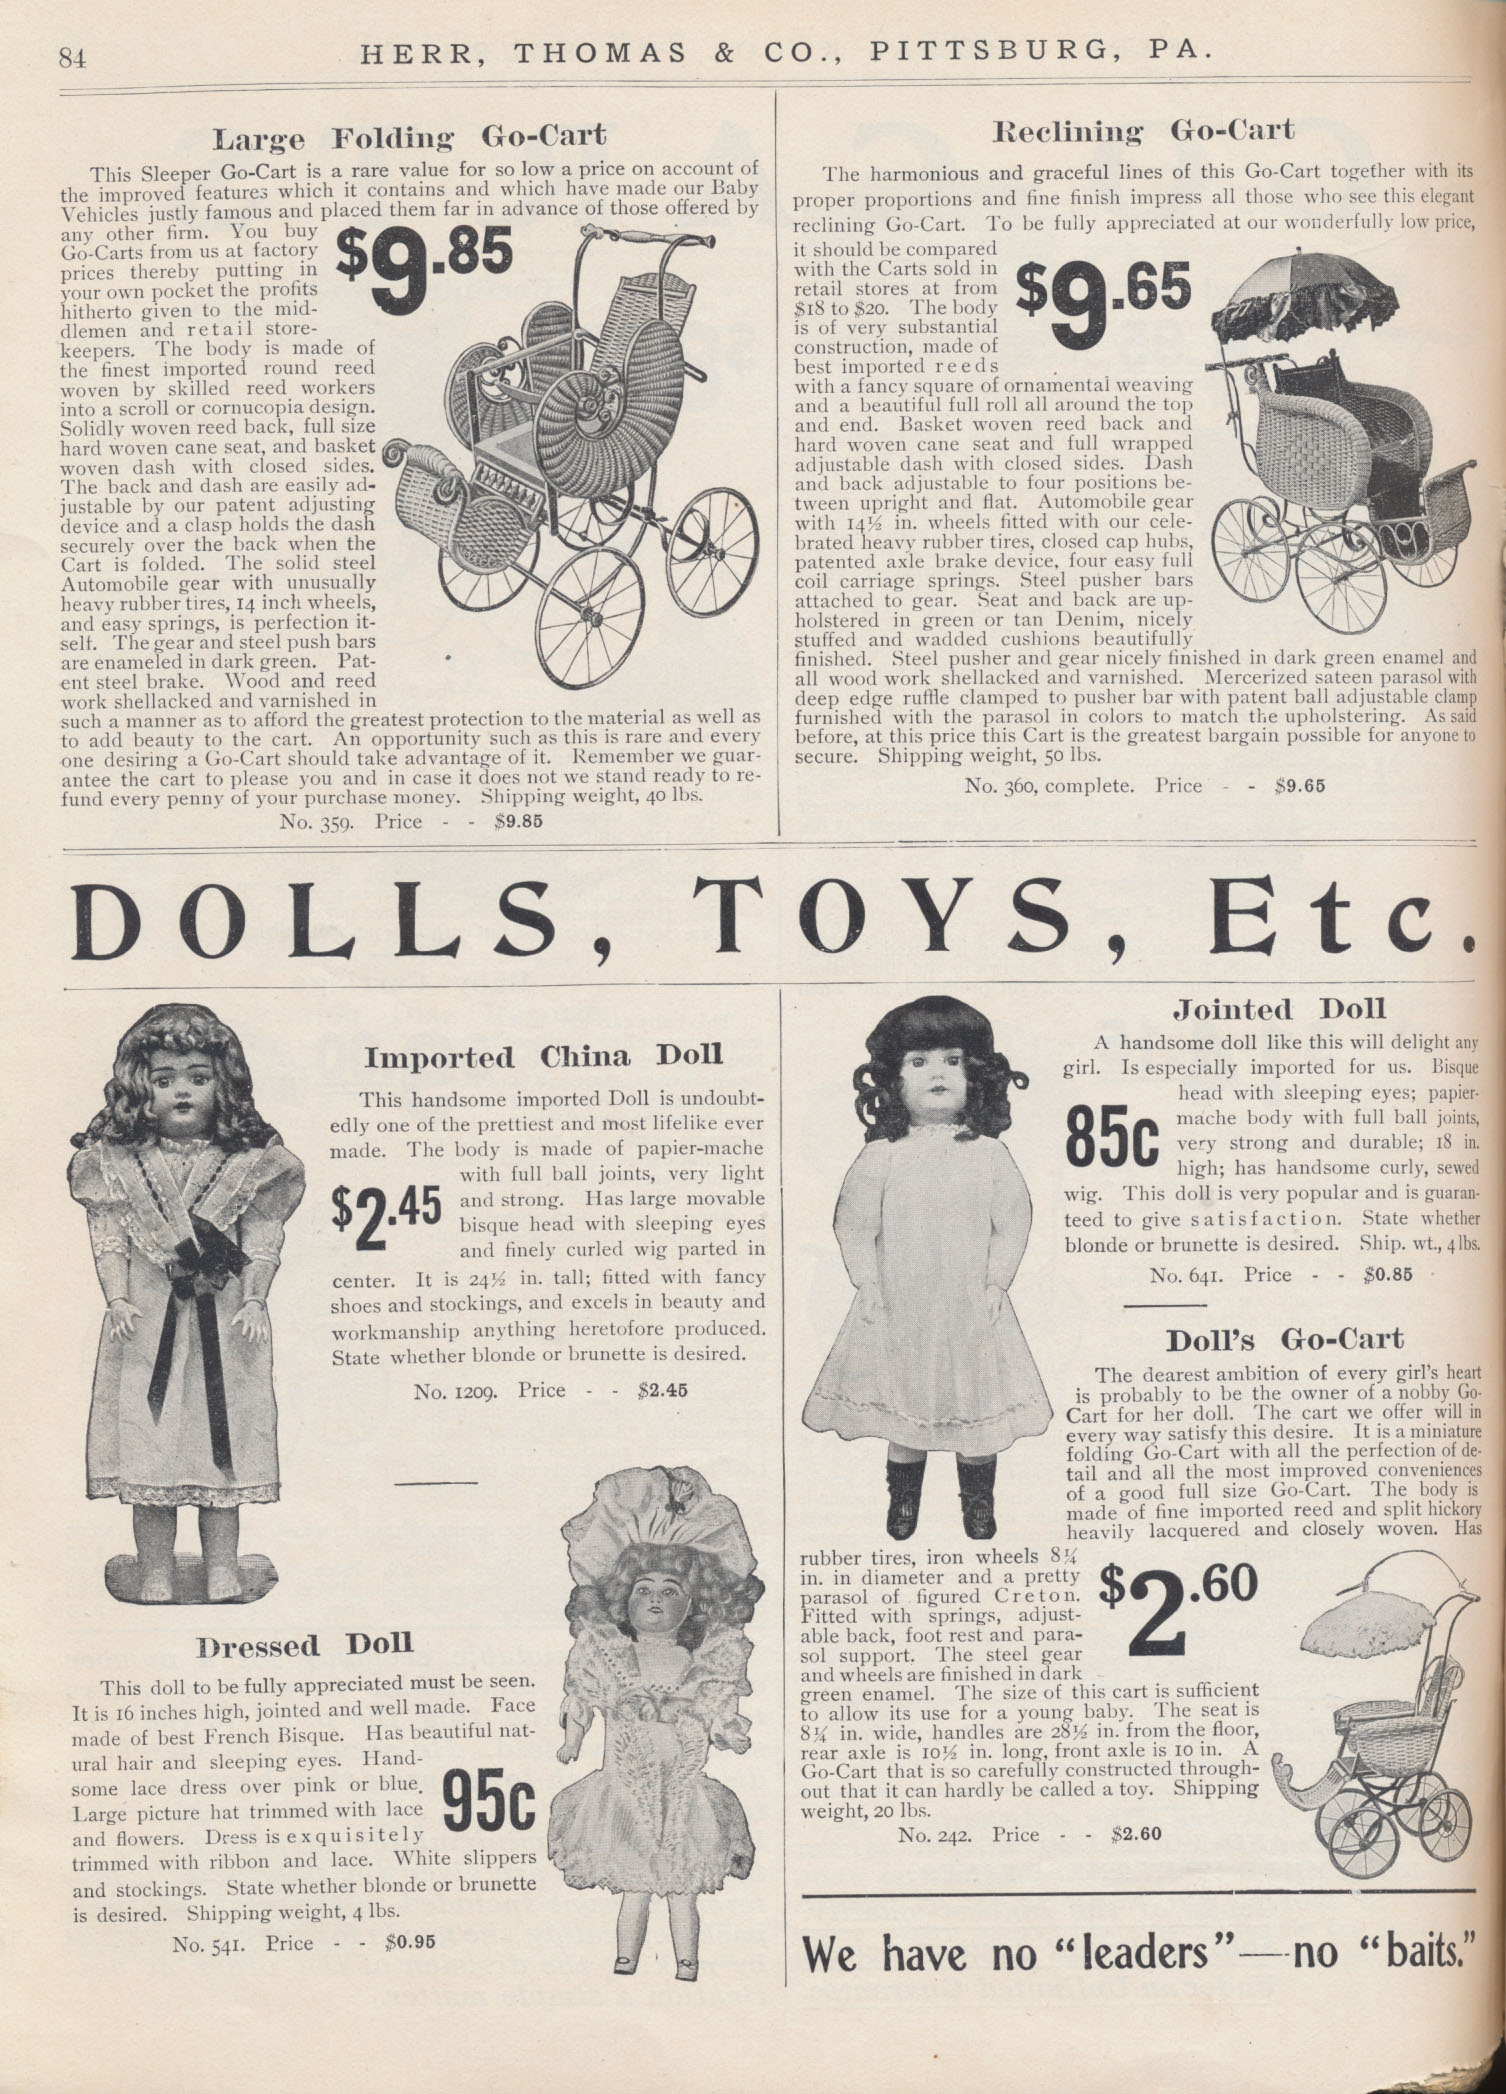 dolls and go-carts